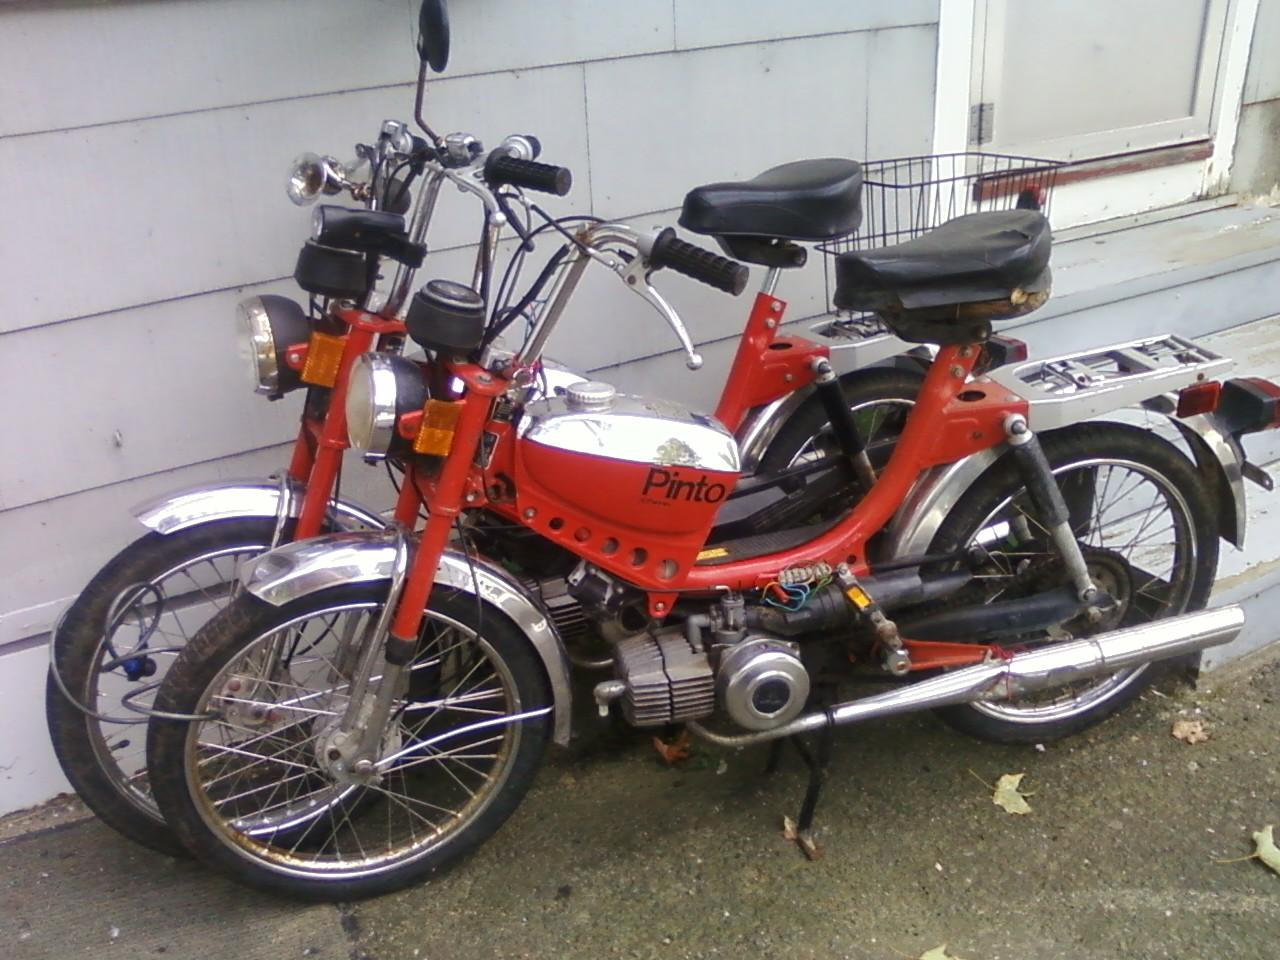 Performance Parts Near Me >> two 1978 jcpenney mopeds for sale 350.00 obo [by twocr0ws] — Moped Army